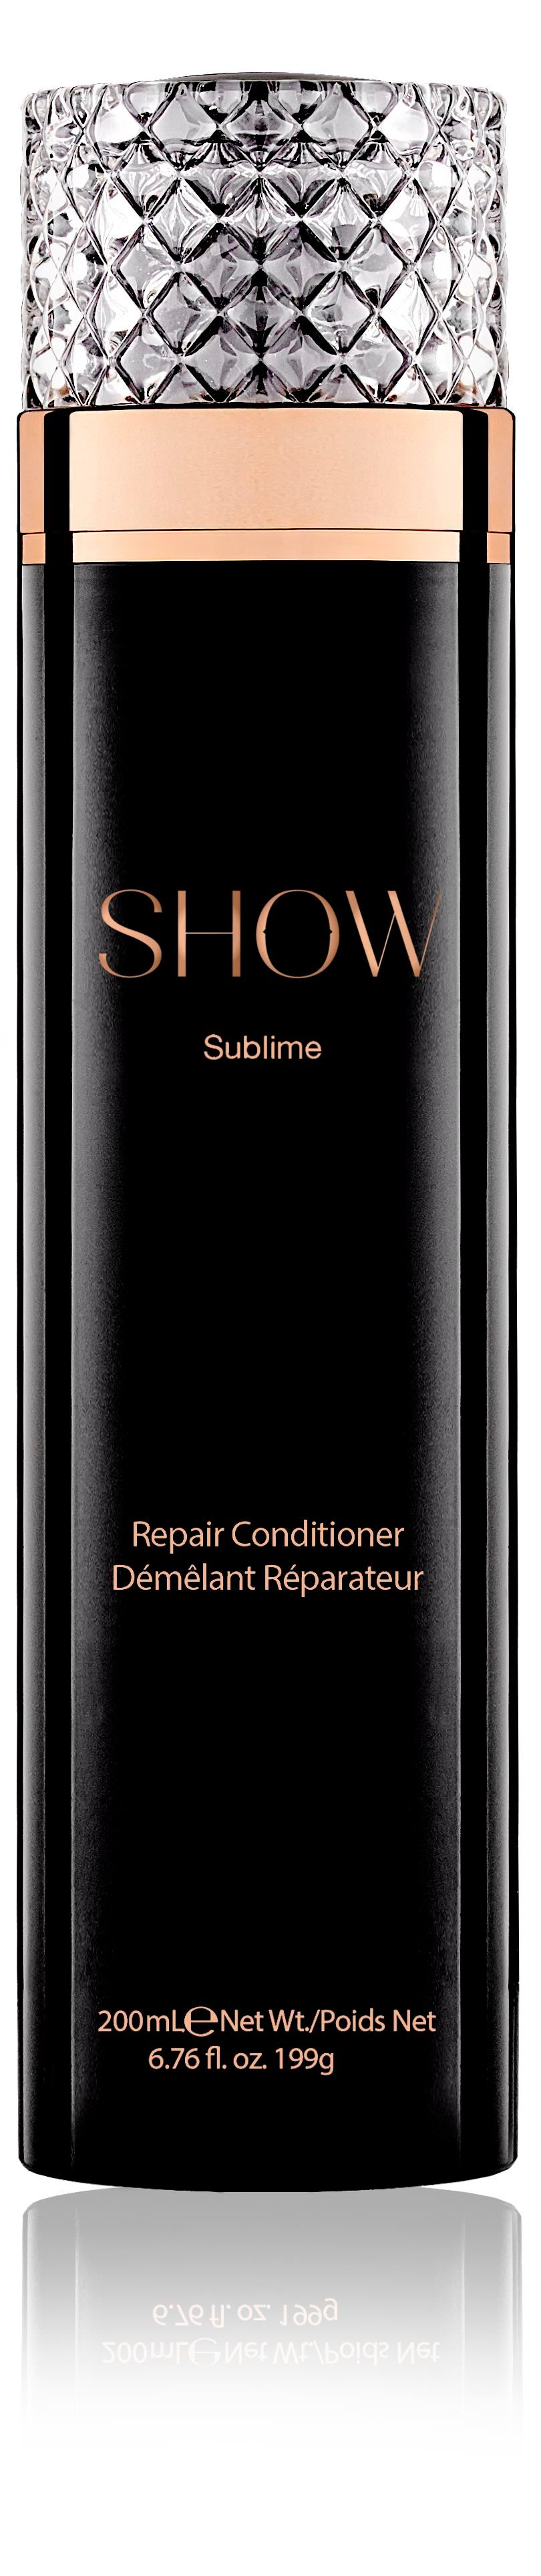 Show Show Sublime Repair Treatment Mask